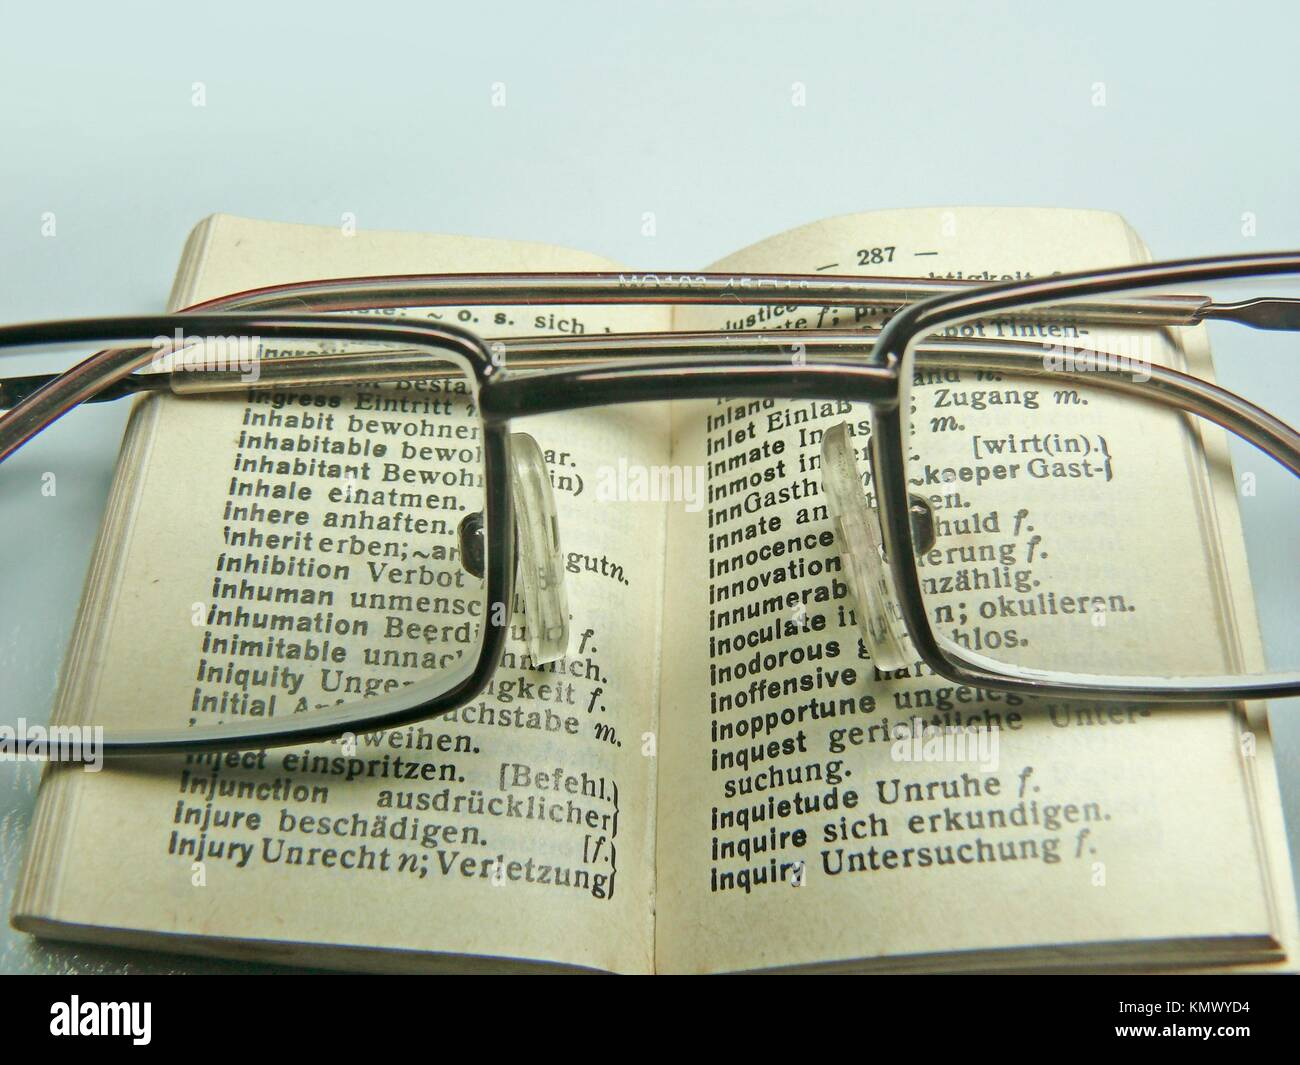 Spectacles on an opened dictionary - Stock Image